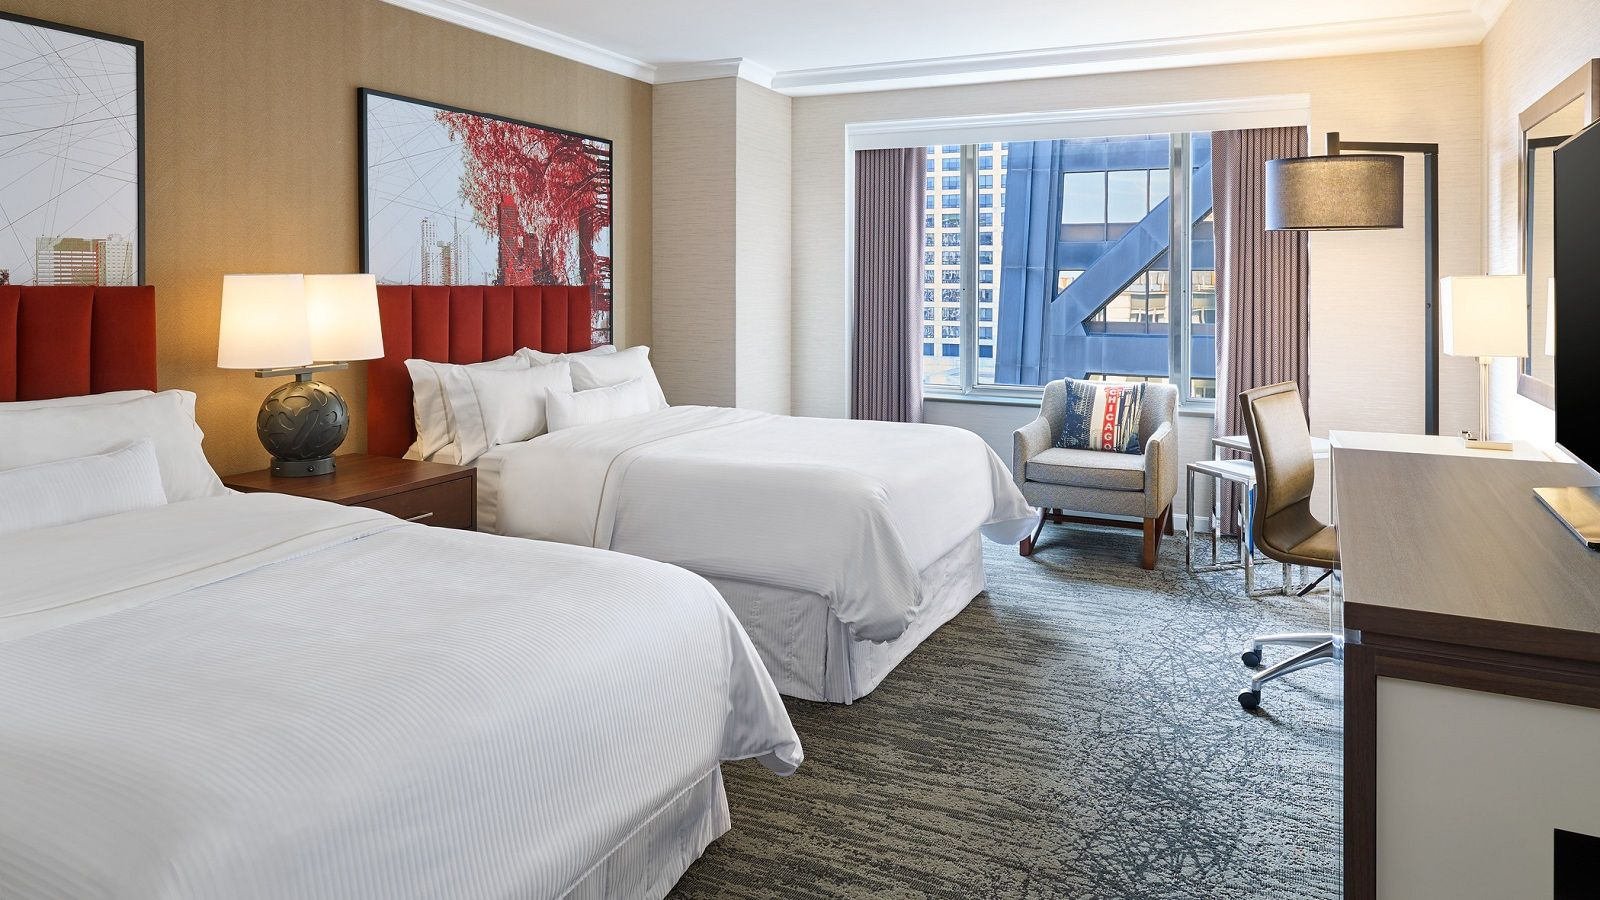 Deluxe Guest Room at The Westin Michigan Avenue Chicago